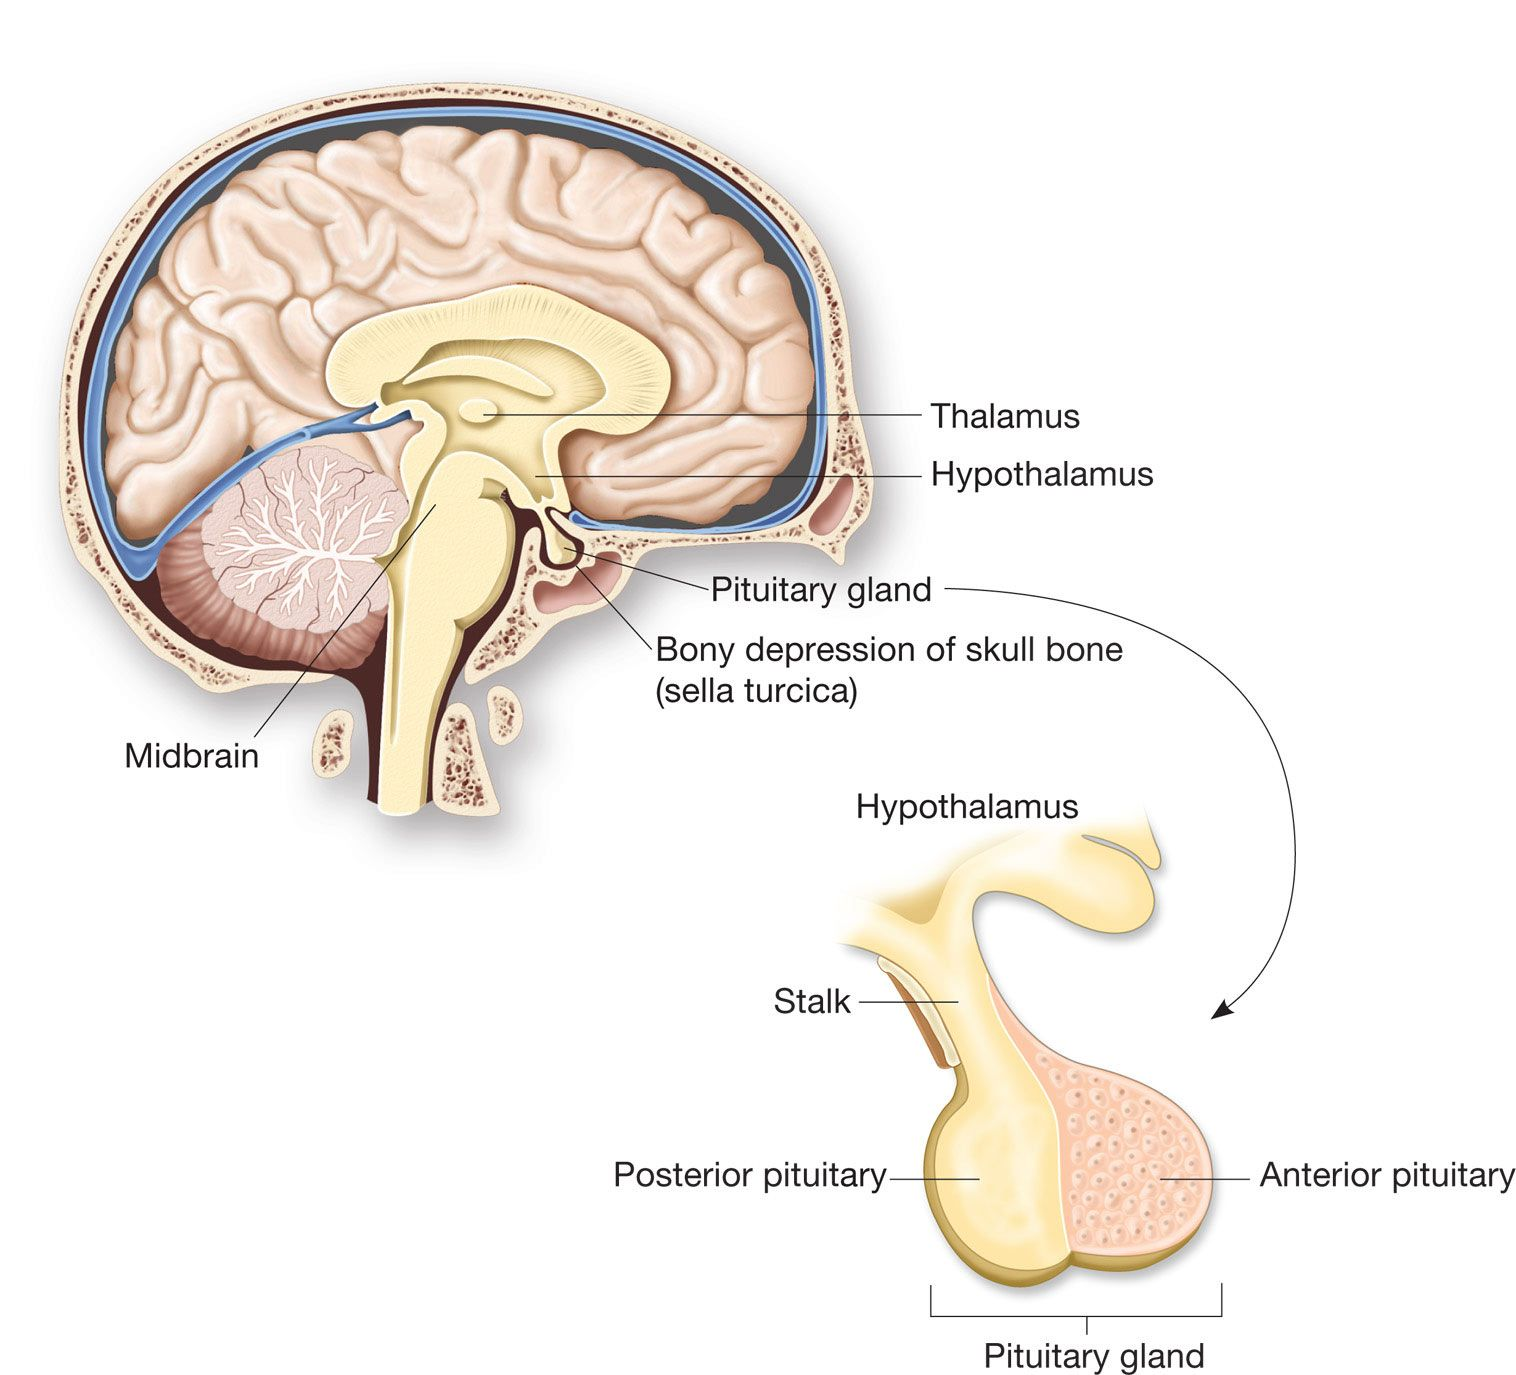 Healing The Pituitary Gland With Nutrition And Natural Remedies